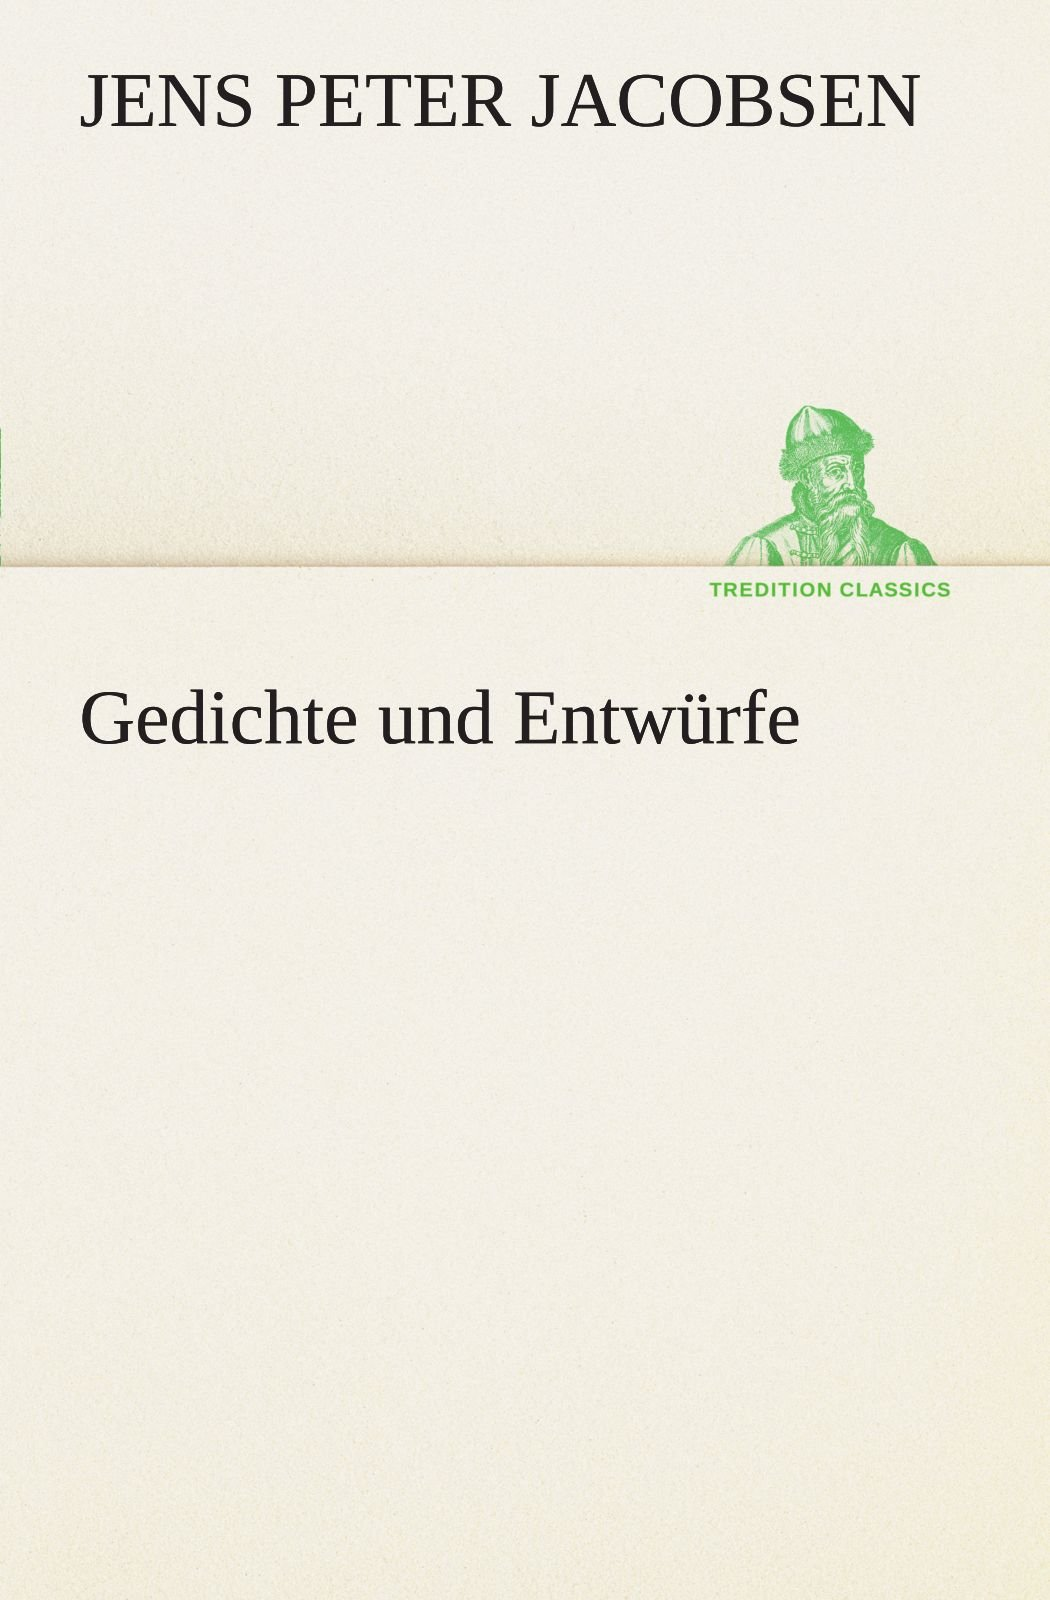 Download Gedichte und Entwürfe (TREDITION CLASSICS) (German Edition) pdf epub